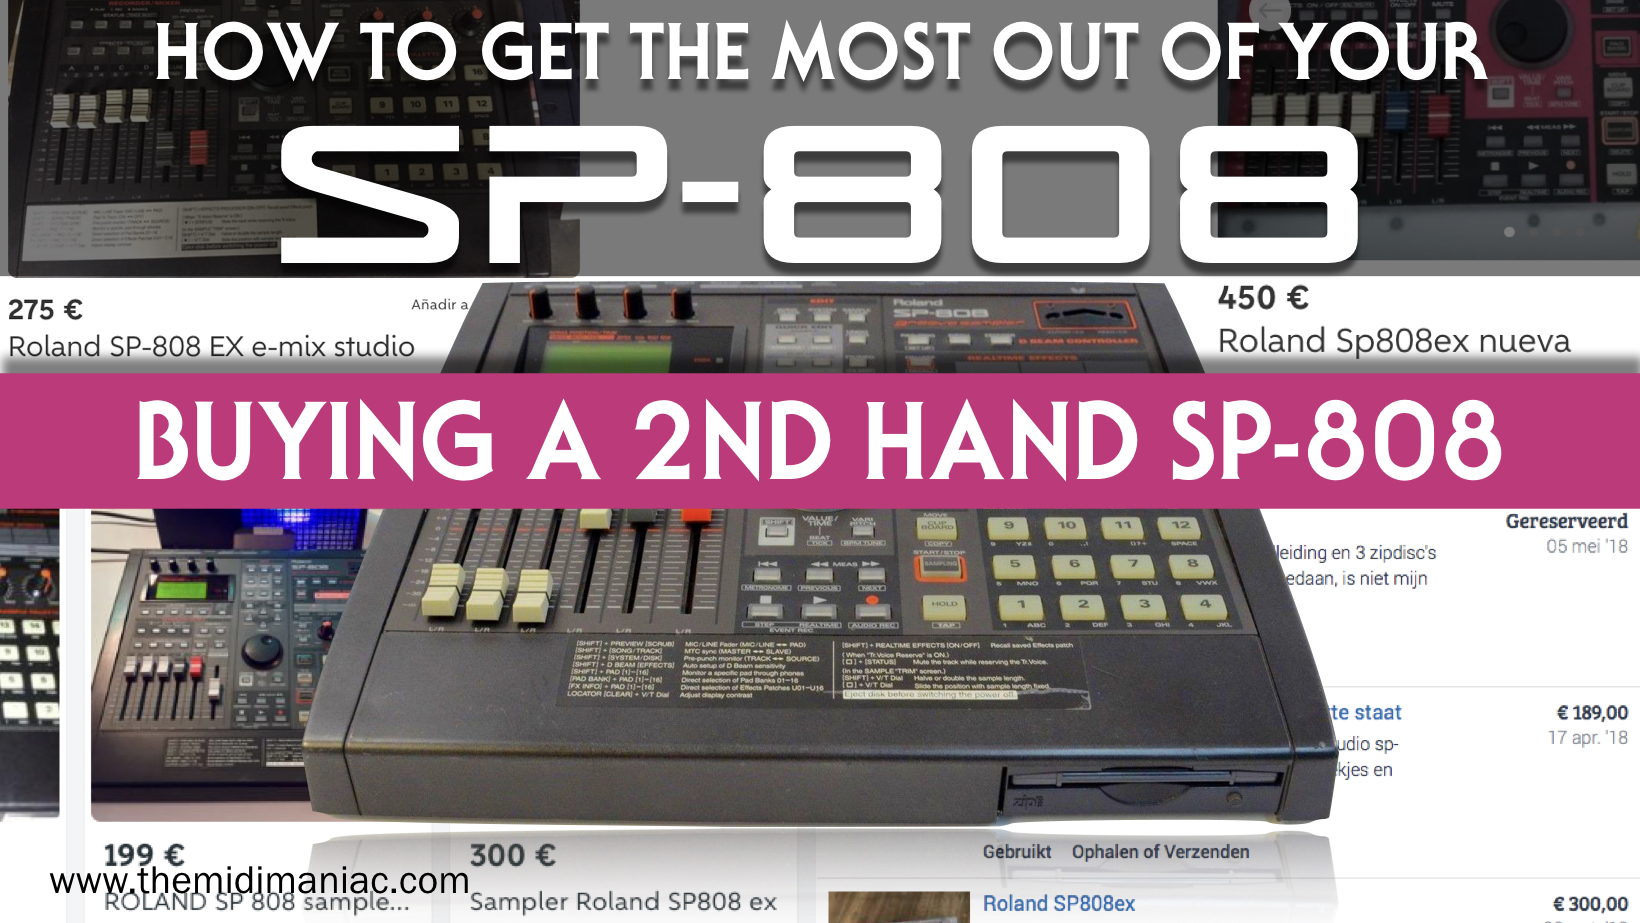 Tips for buying a second hand Roland SP-808